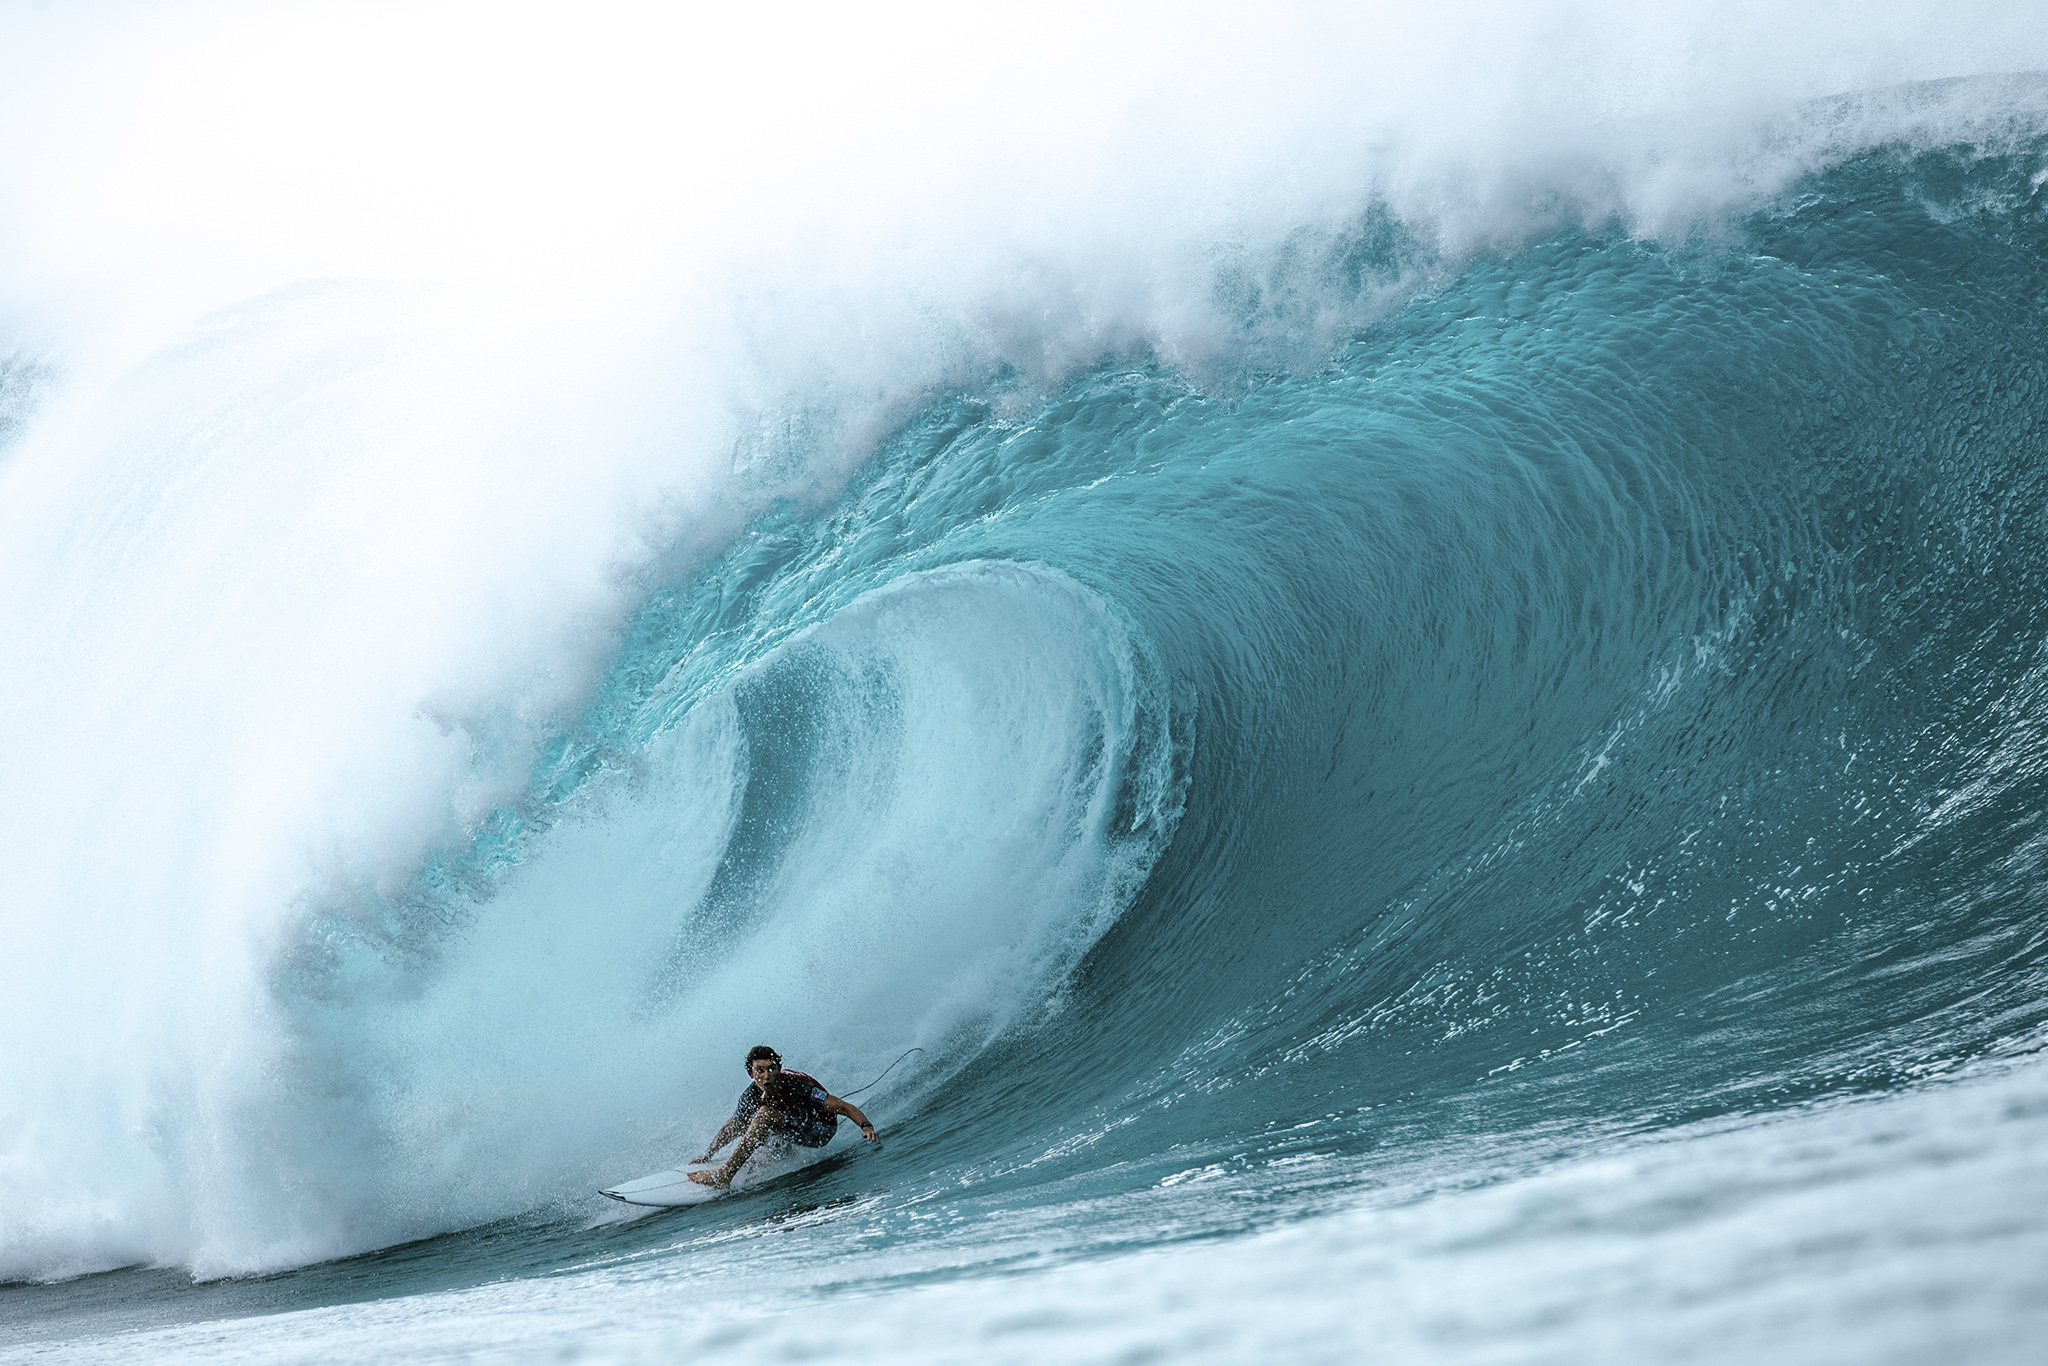 fcef0c2aa15d68 Griffan Colapinto of USA placed second in Heat 5 of Round 3 at the  Billabong Pipe Masters at Pipeline